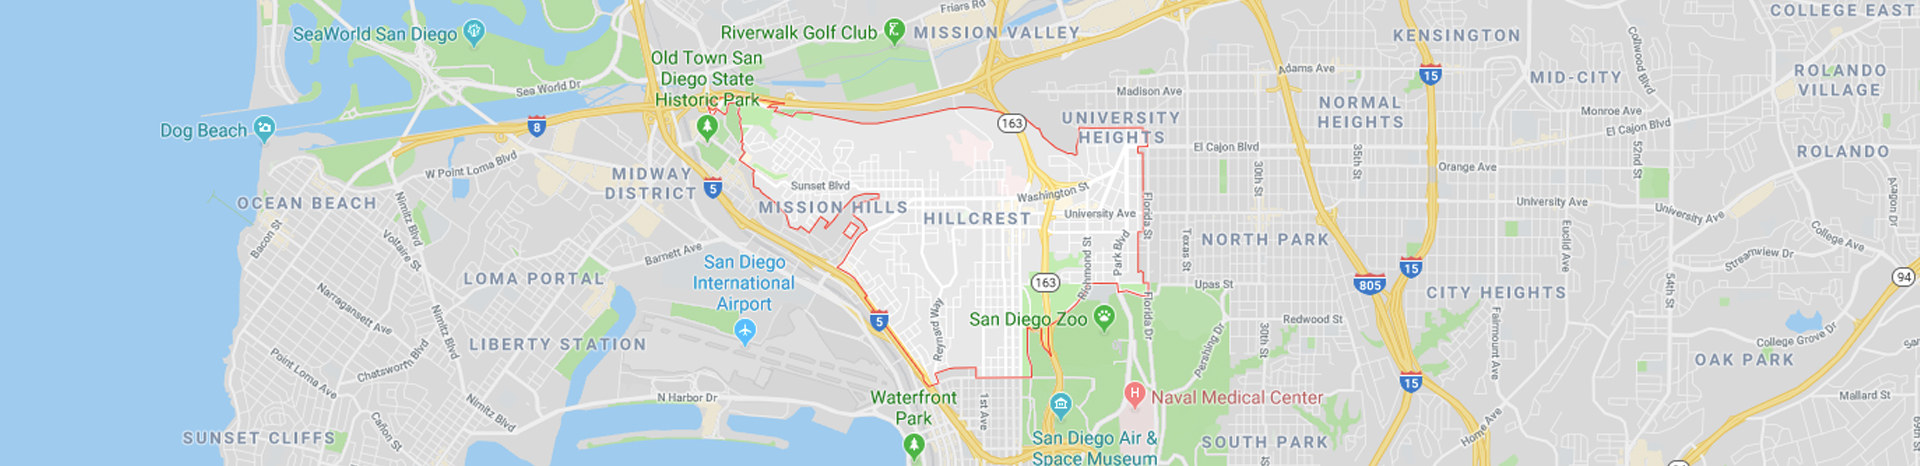 Hillcrest and Mission Hills San Diego Map